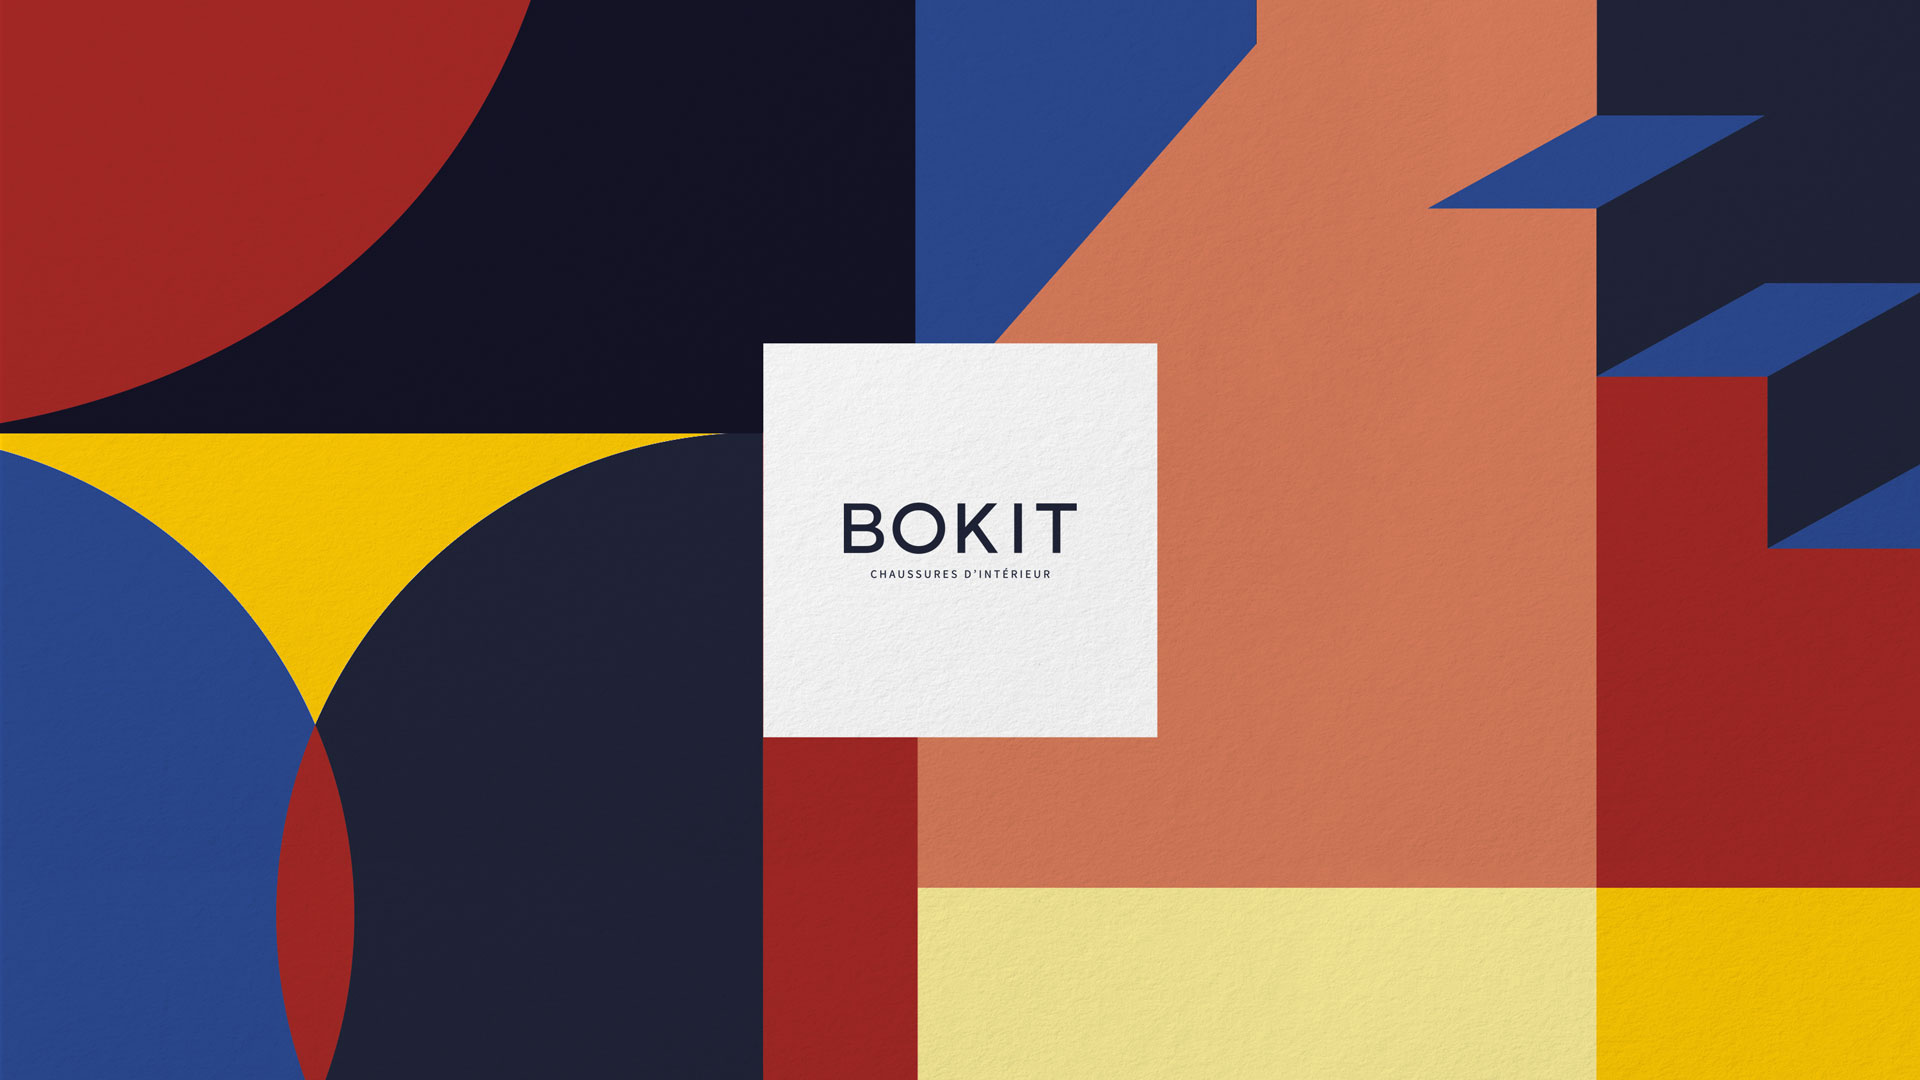 A new geometric and colorful branding for interior shoes brand Bokit